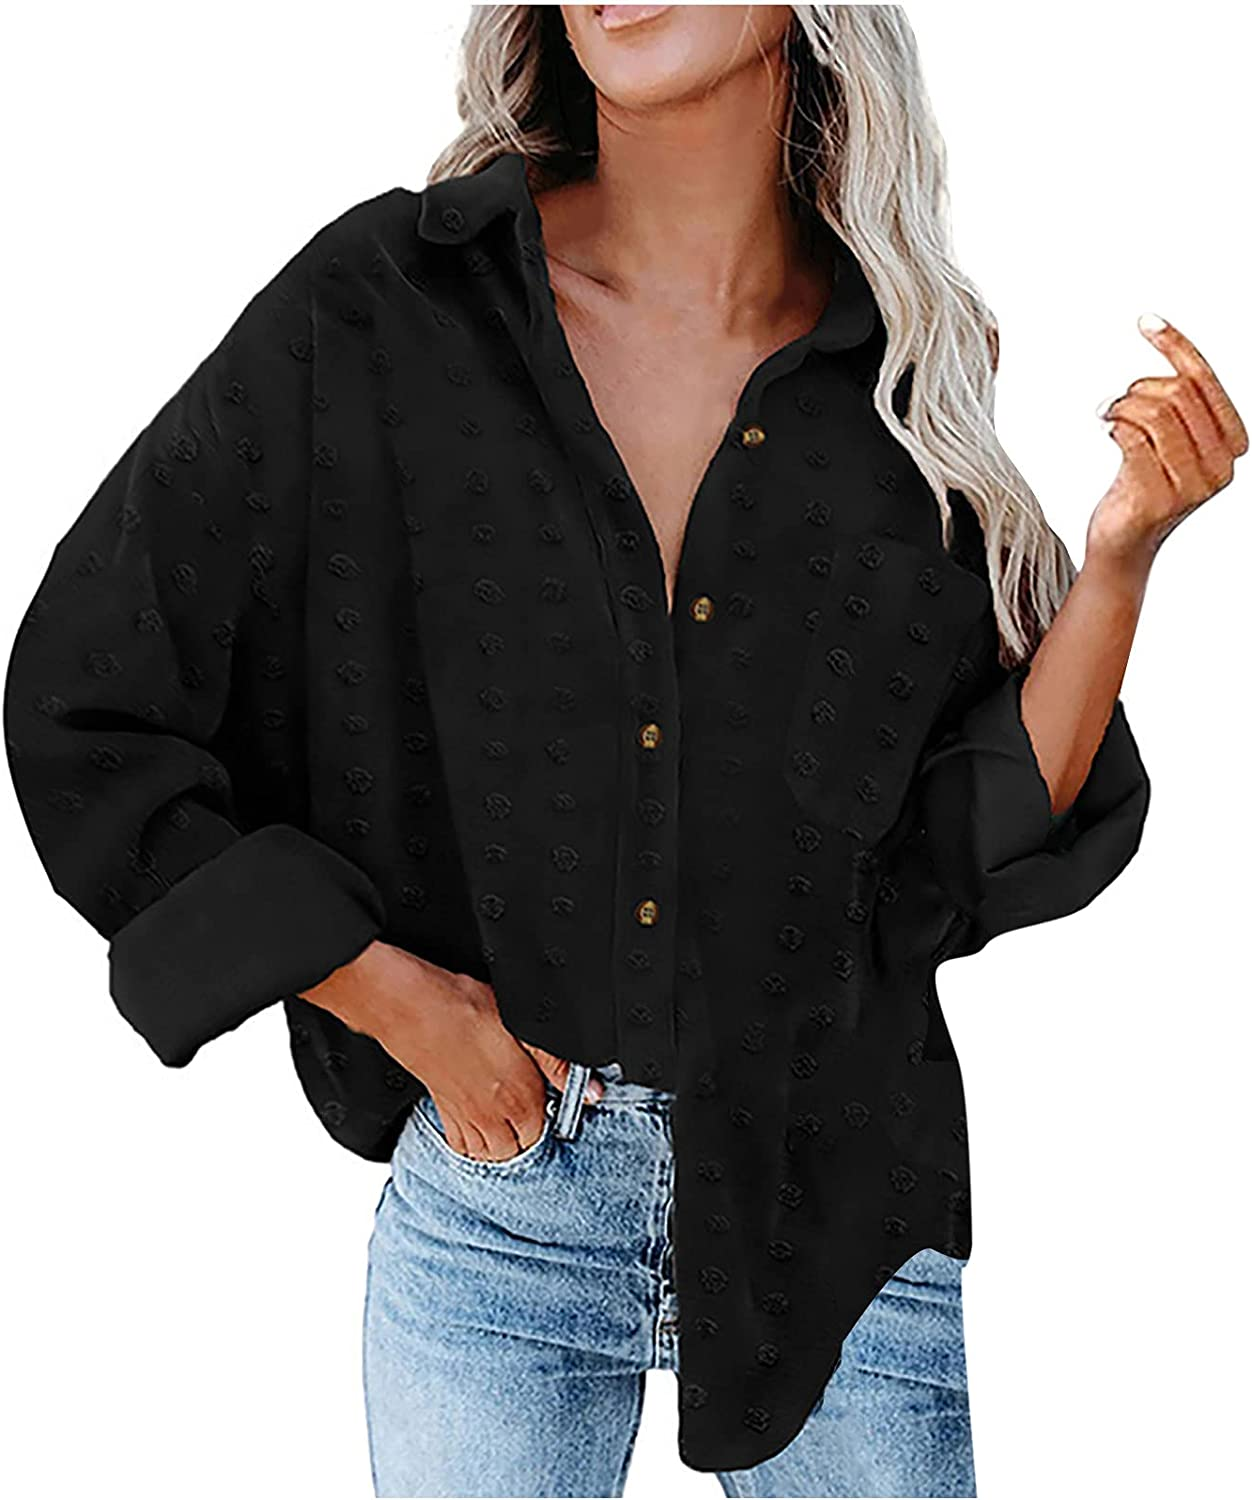 Women's Fall Lightweight Shirt Coat Oversized Solid Color Long Sleeve Tops Fashion Pom Pom Lapel Button Pocket Blouse